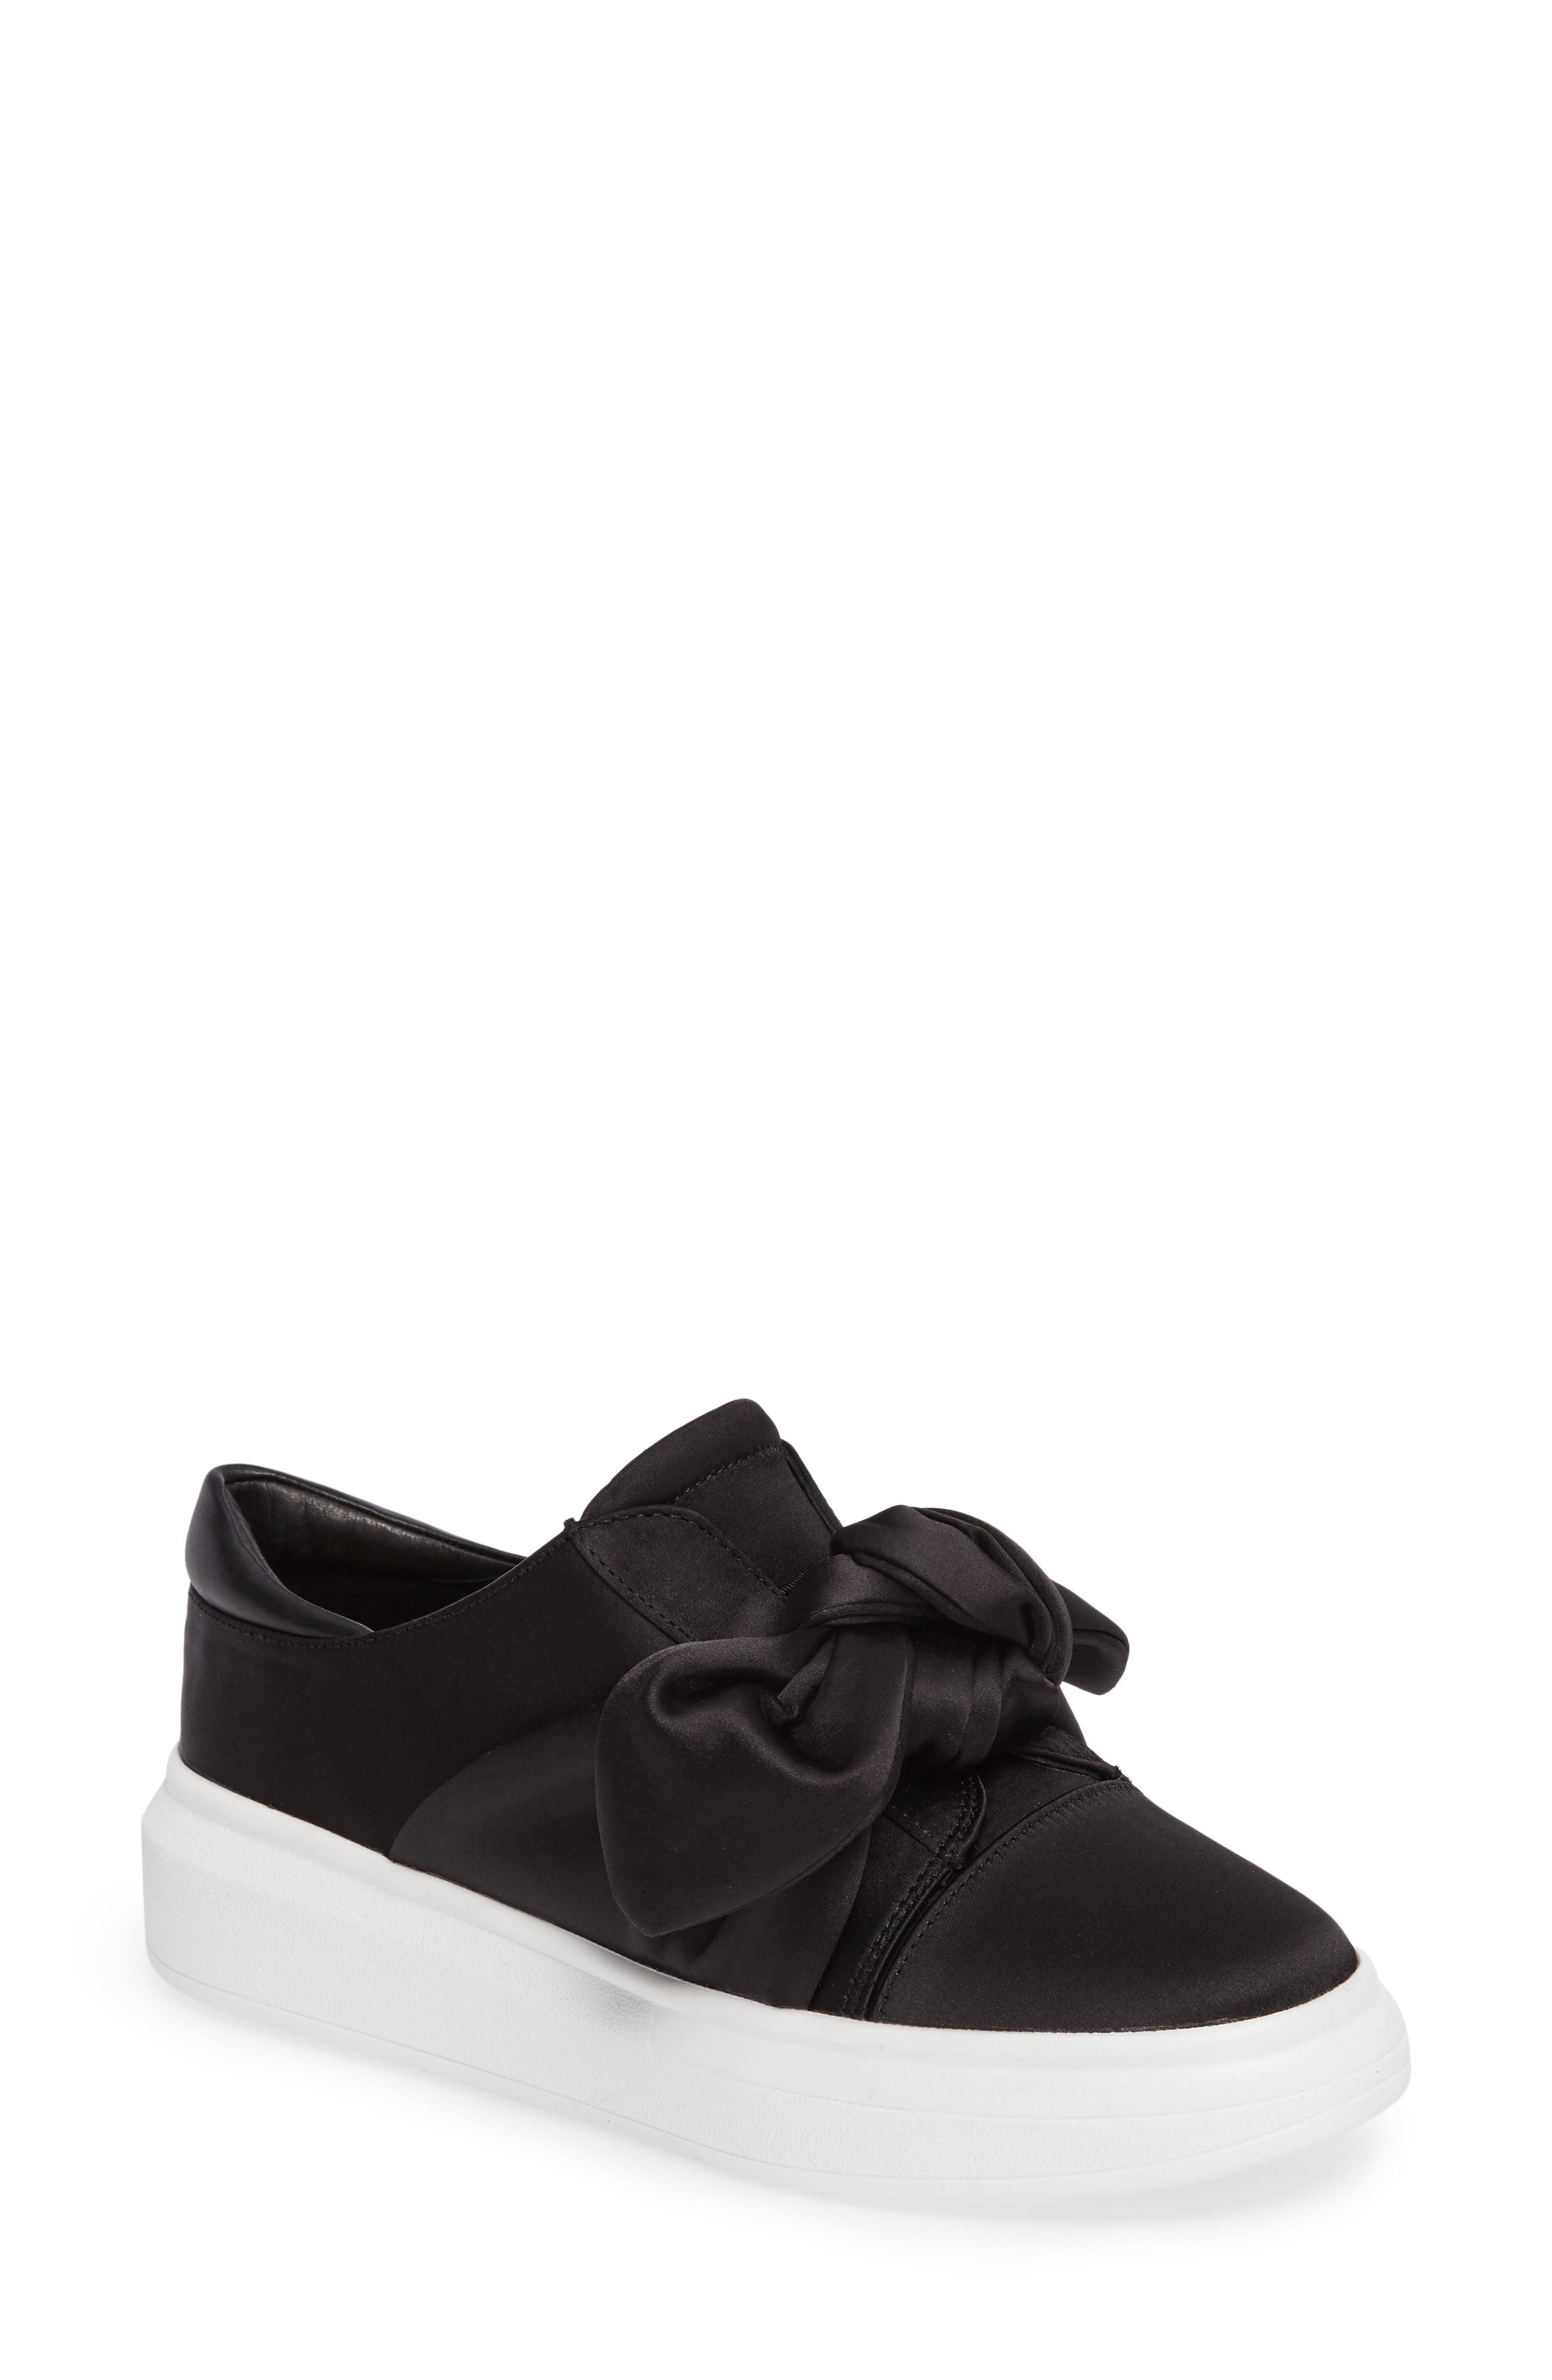 Main Image - Shellys London Edgar Slip-On Sneaker (Women)